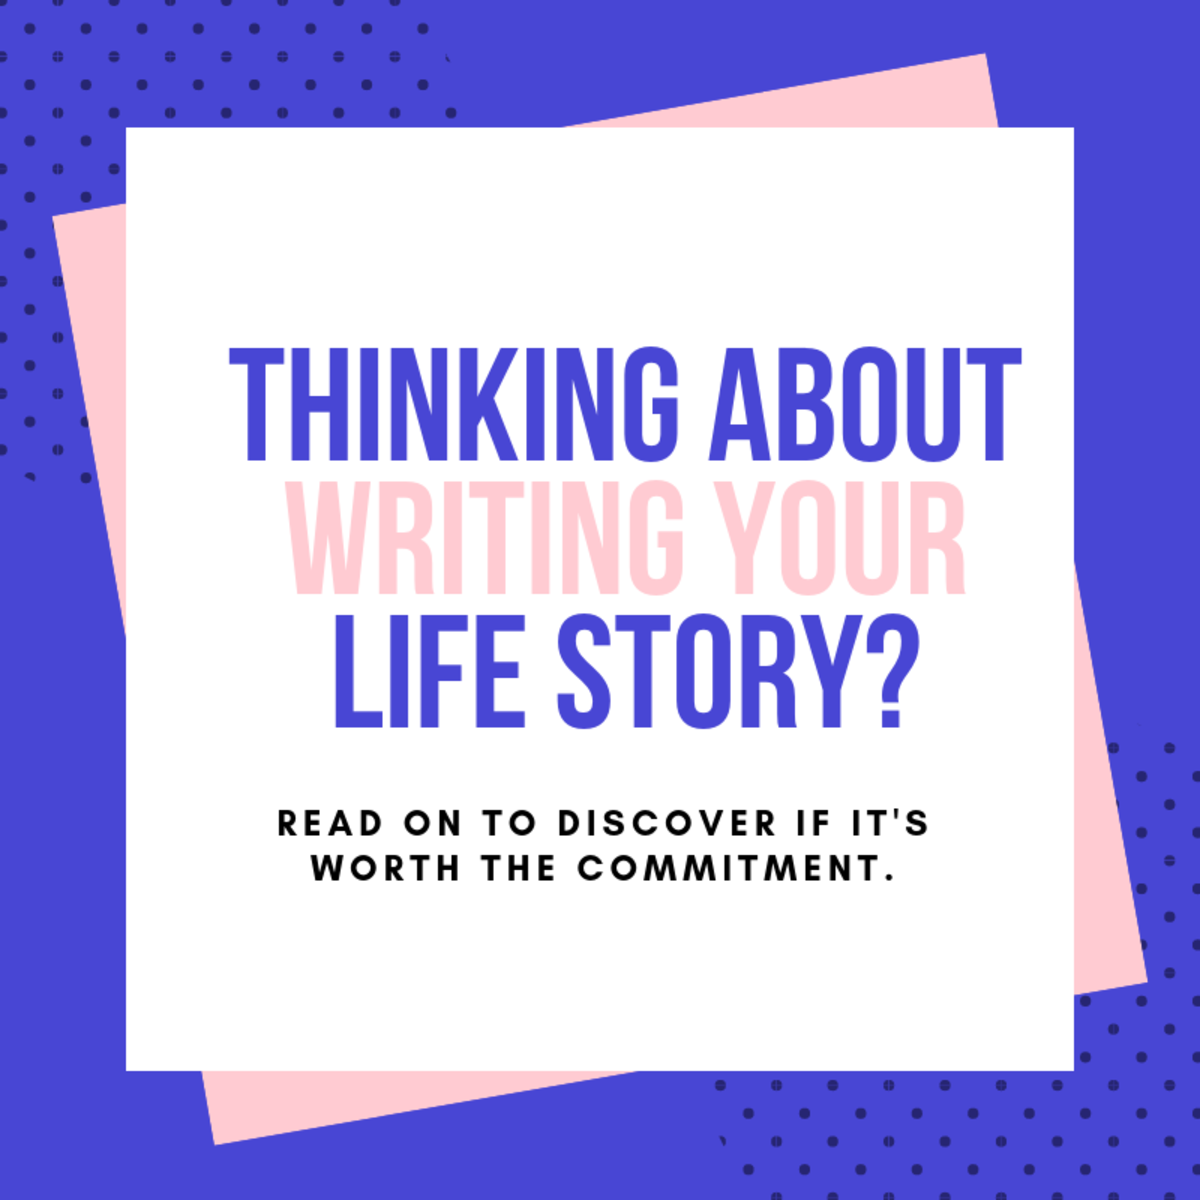 Should You Write Your Life Story? Consider Details